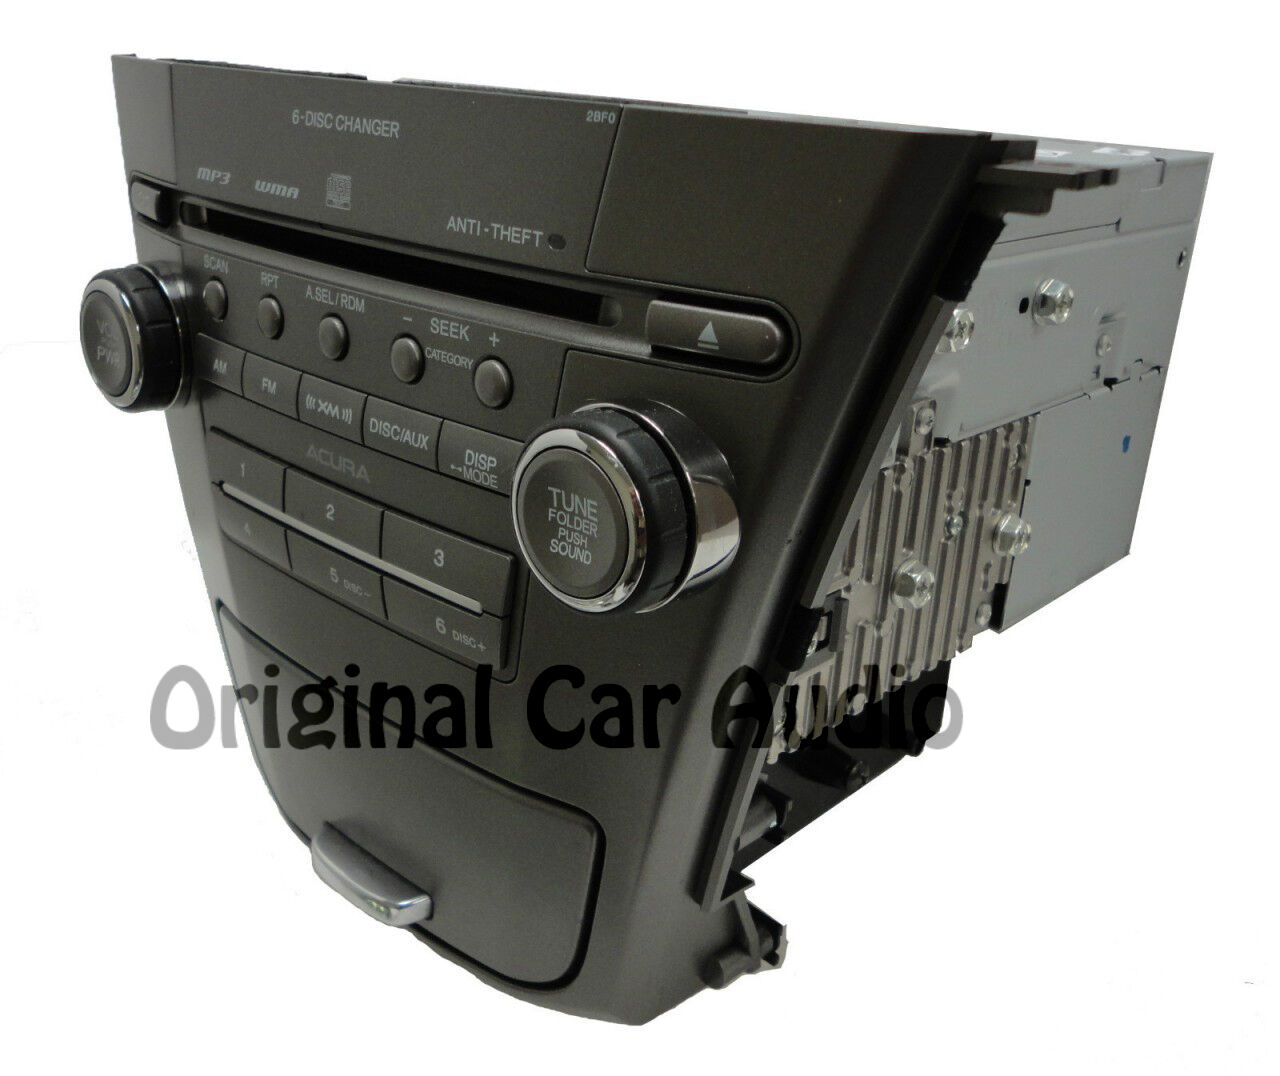 07 08 09 ACURA MDX REPAIR FIX YOUR Radio Stereo 6 Disc